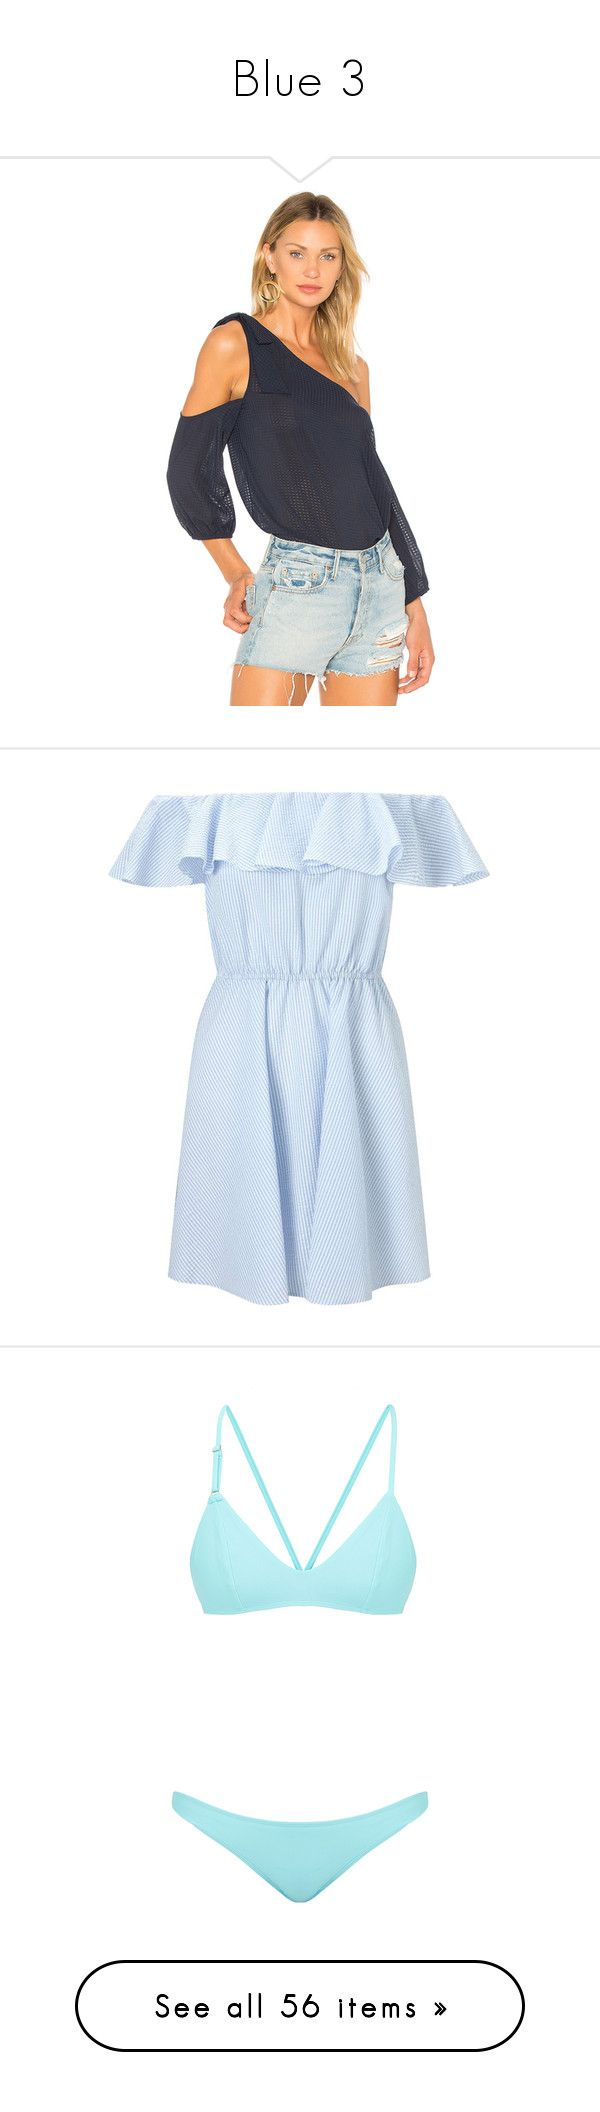 """""""Blue 3"""" by faeryrain ❤ liked on Polyvore featuring tops, fashion tops, one shoulder tops, tie knot top, tie top, elastic top, bcbgeneration, dresses, blue and petite"""